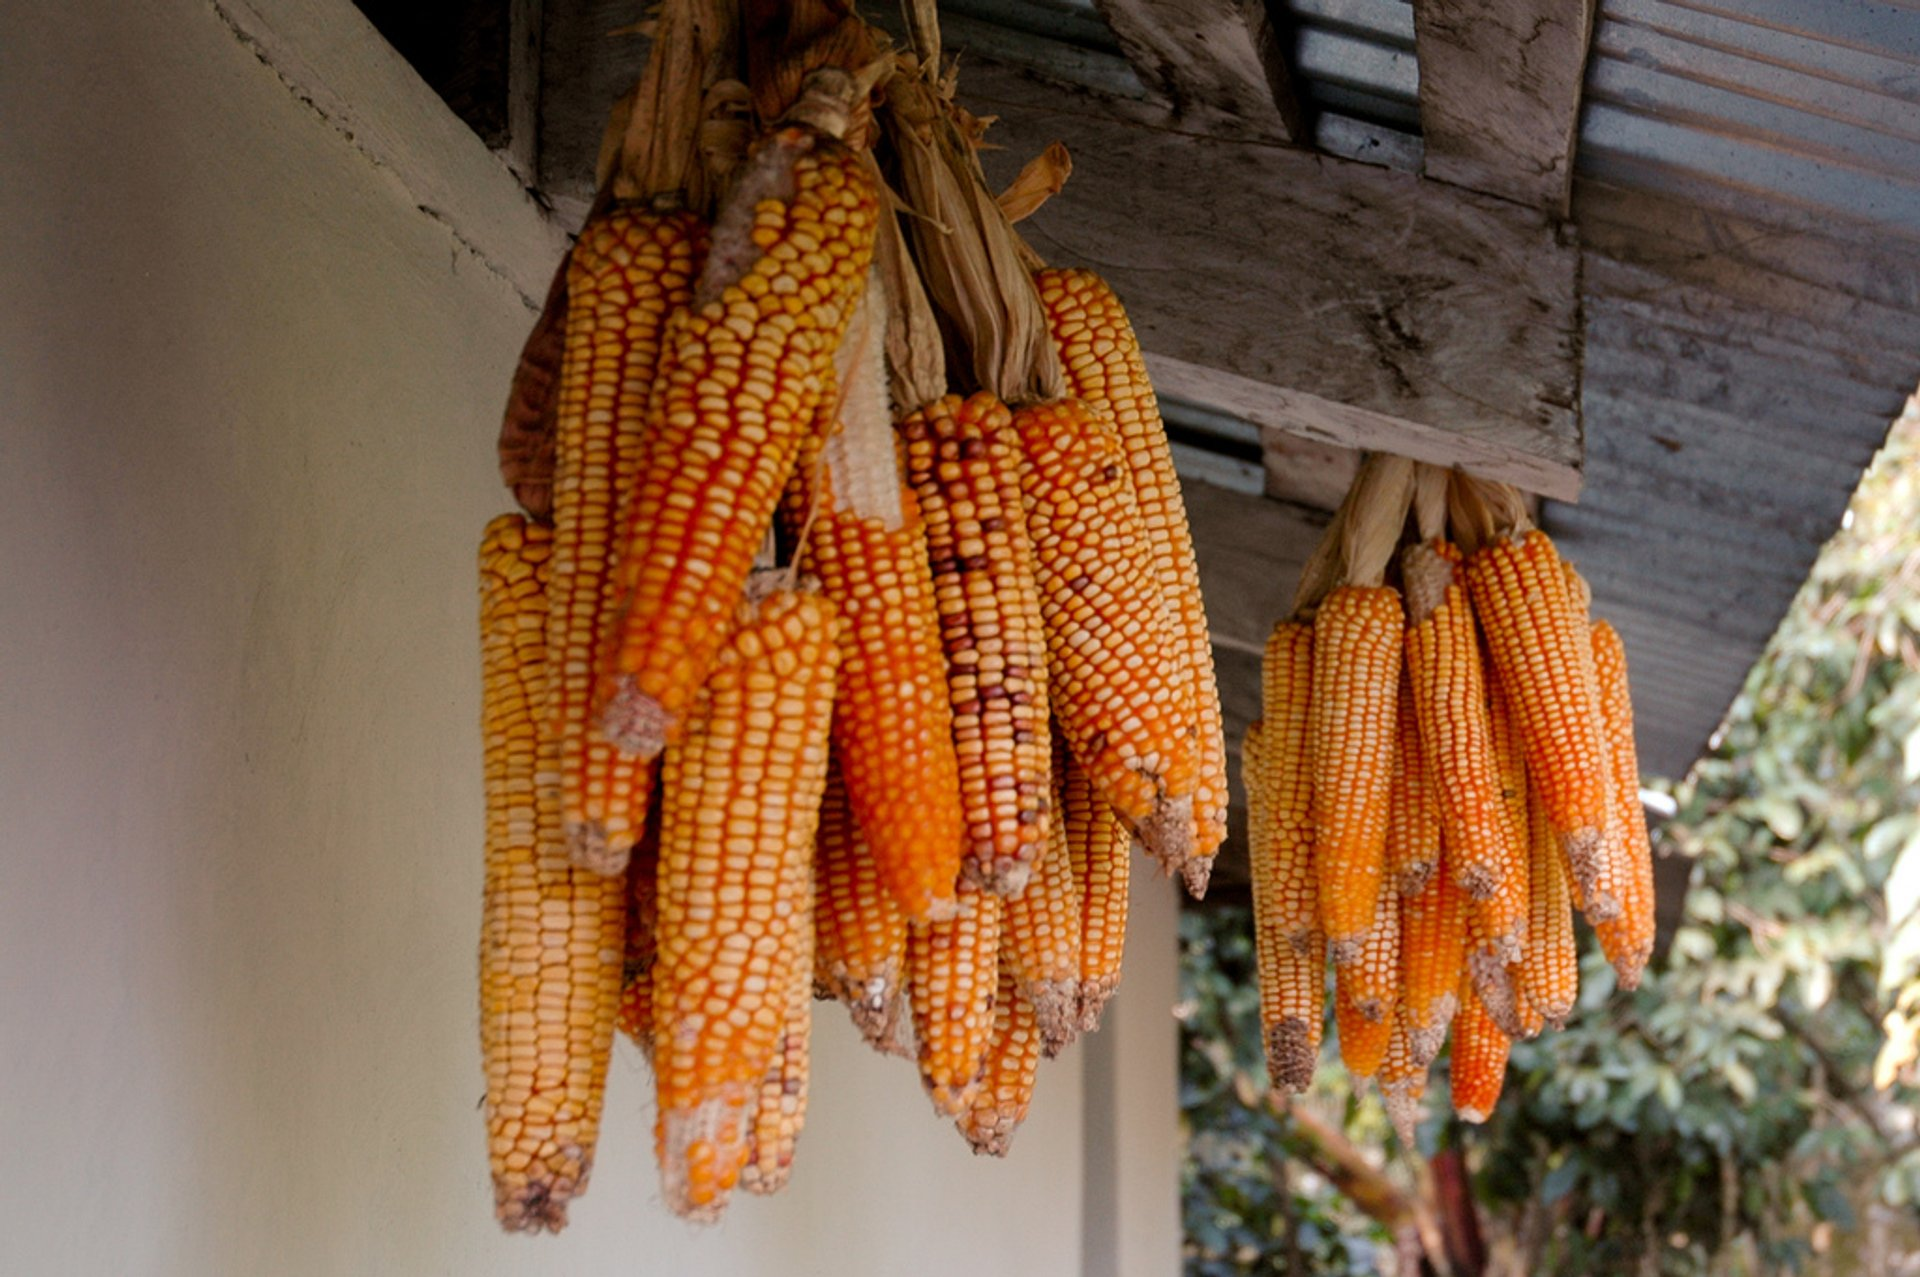 Maíz (Corn) Season in Honduras 2020 - Best Time